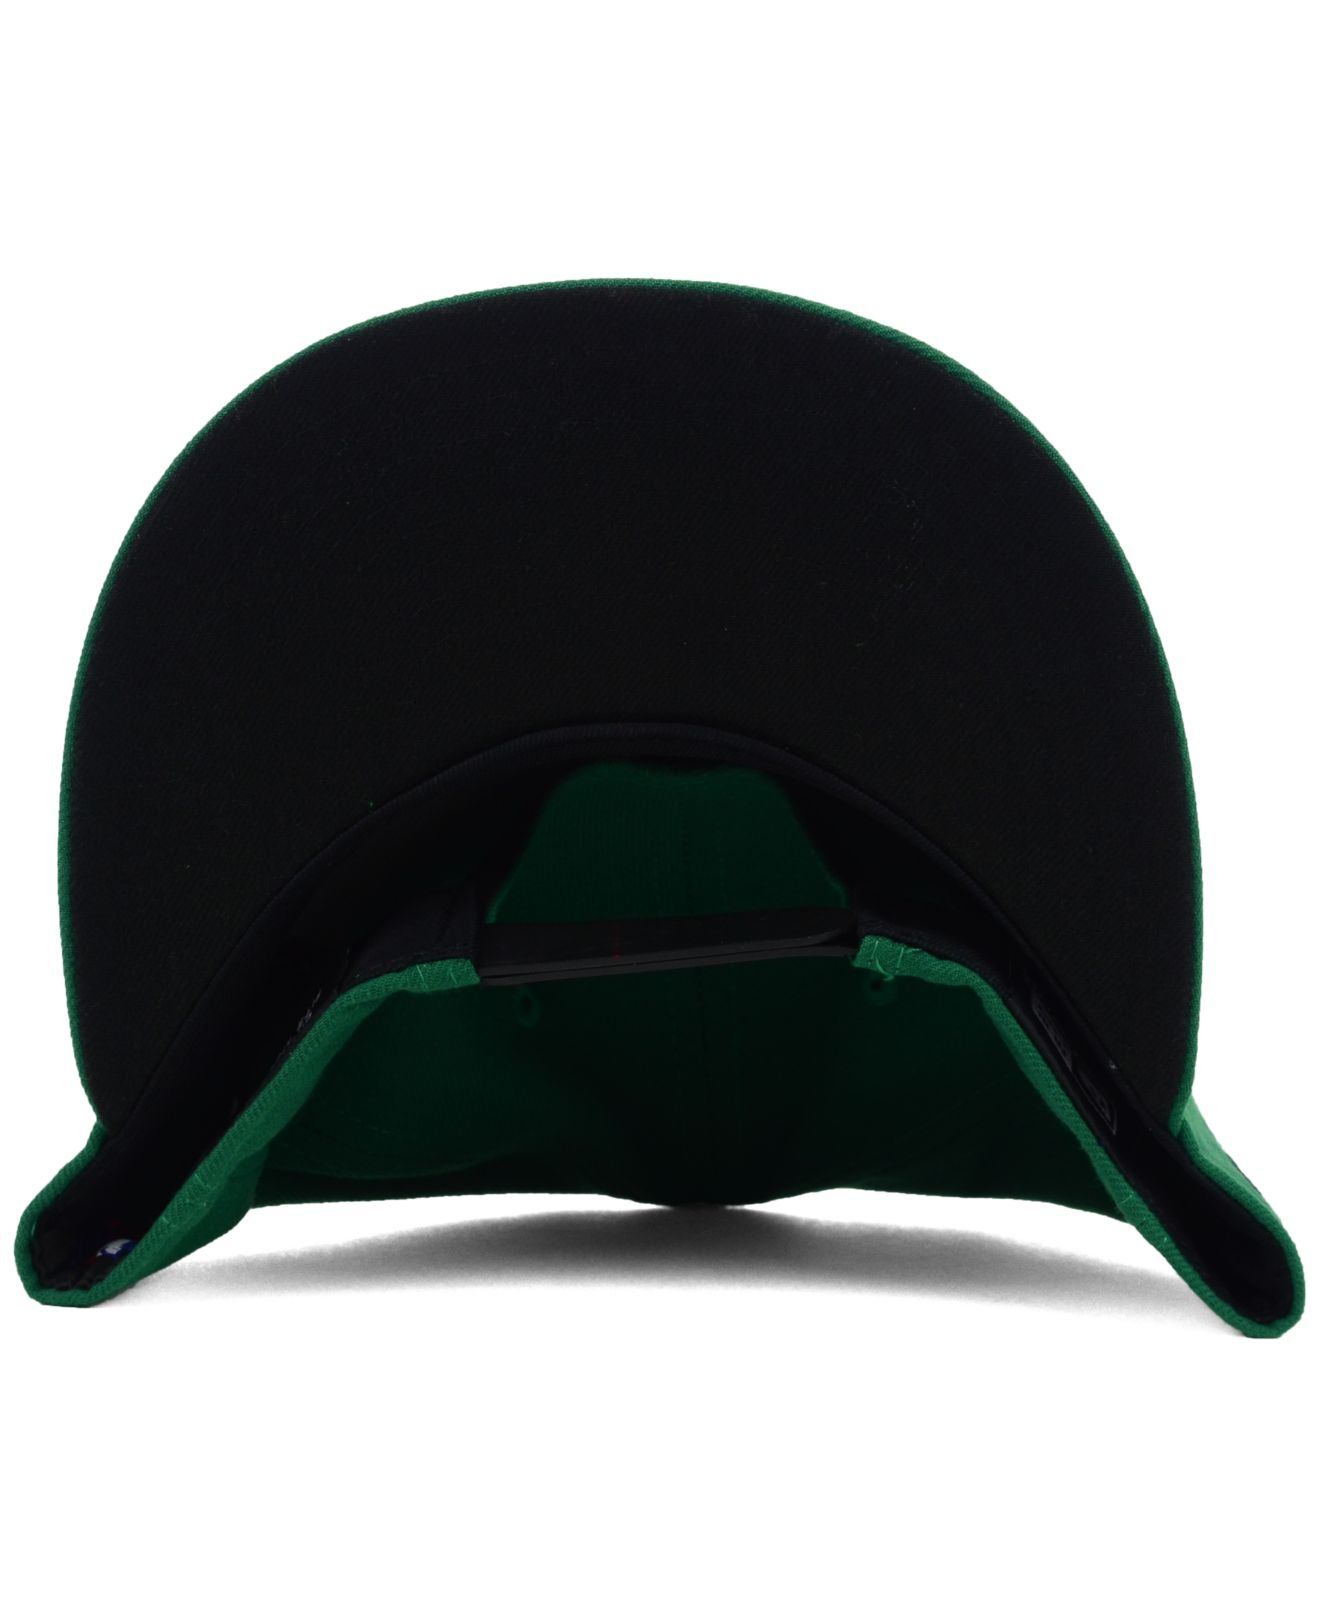 Lyst - Ktz Boston Red Sox Snap-Dub 9Fifty Cap in Green for Men 4a030b067cea